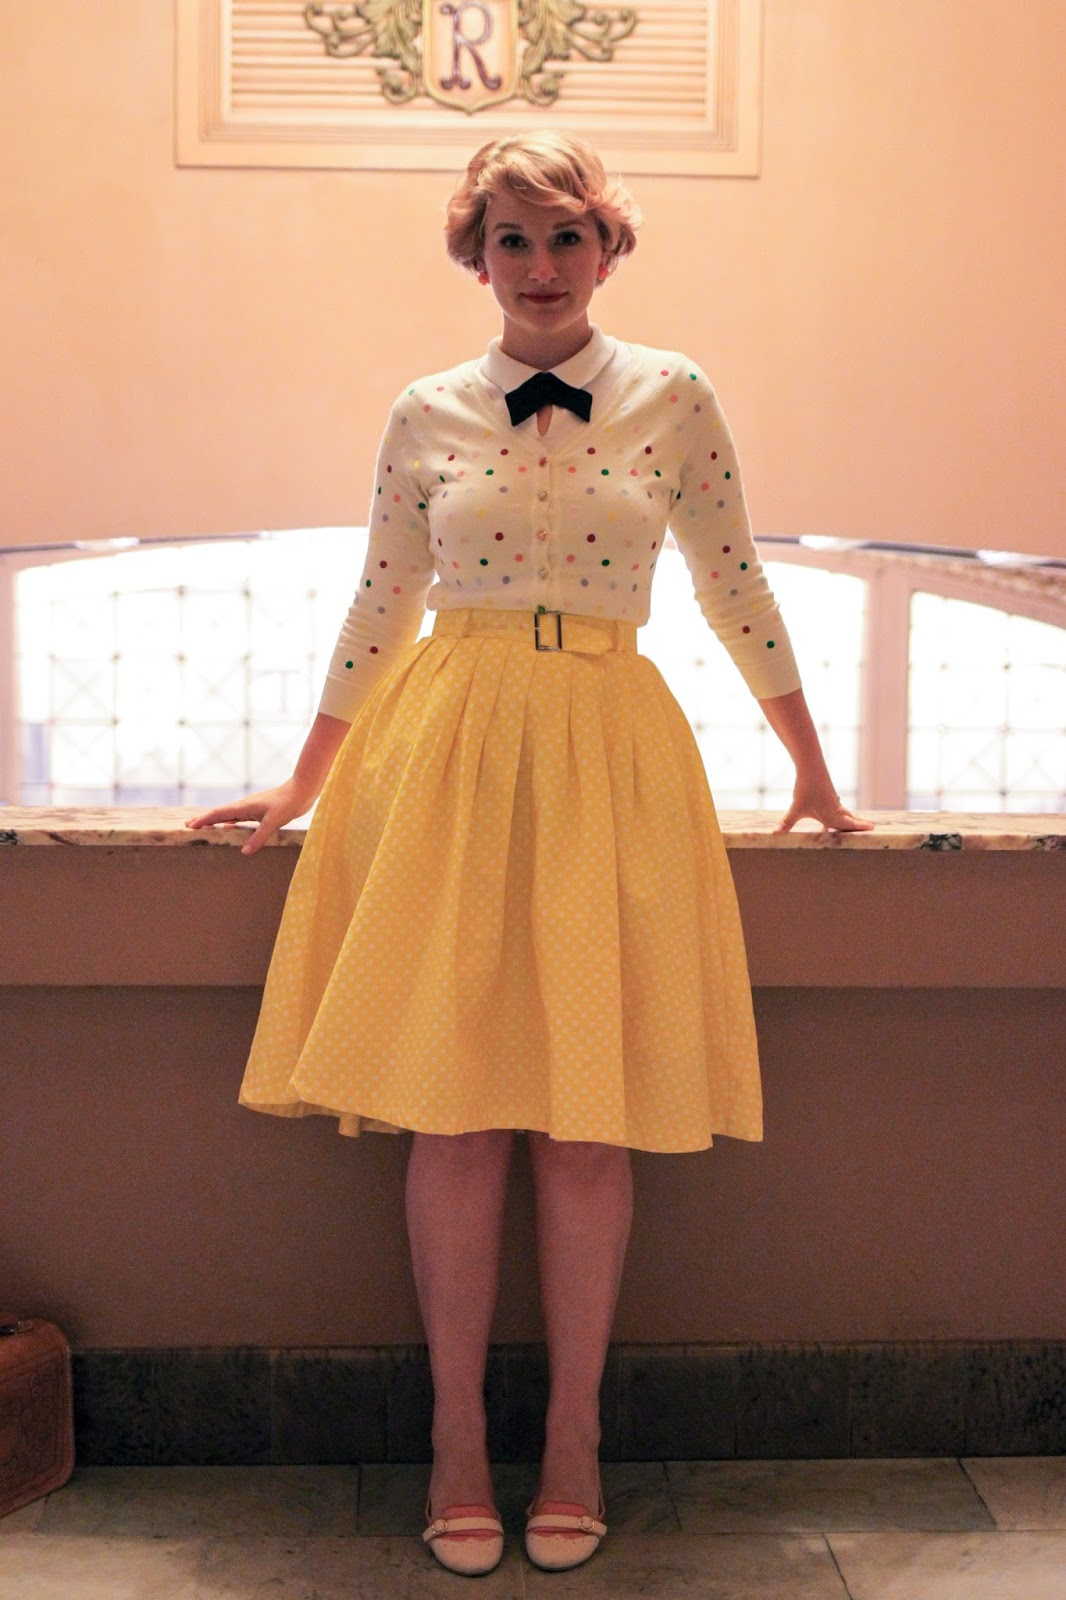 Liana of Finding Femme visits Regent Multiplex Cinema Ballarat wearing an embroidered Alannah Hill cardigan and yellow Modcloth skirt.